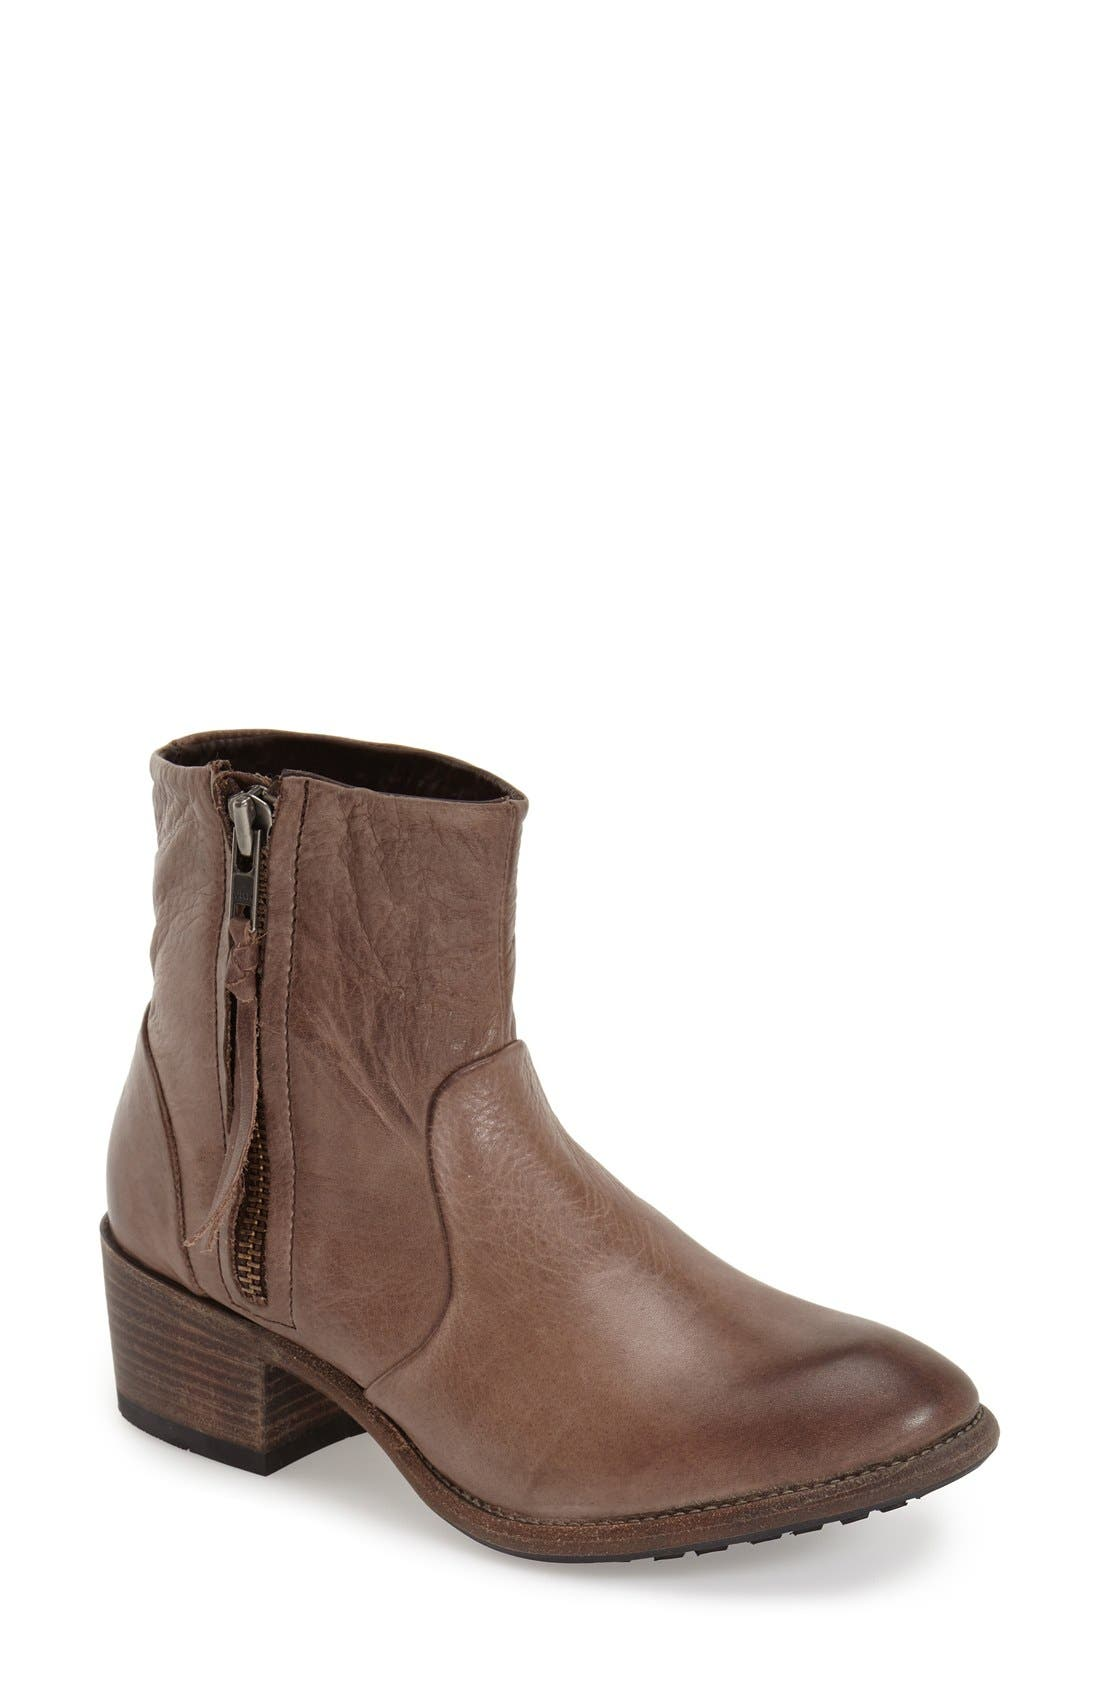 'KL89' Bootie,                         Main,                         color, Truffle Leather